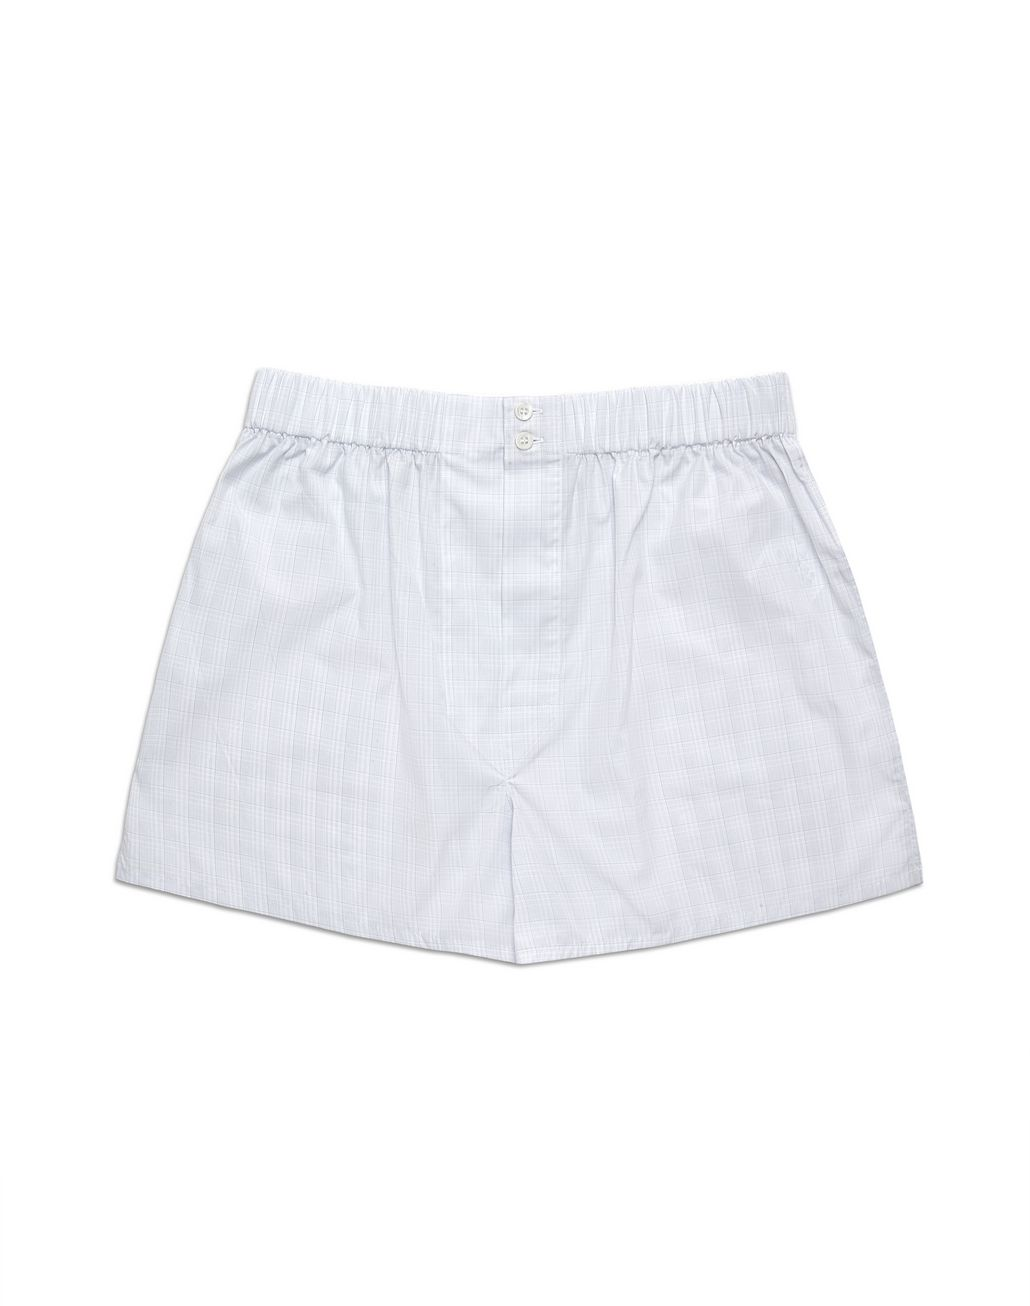 BRIONI Bluette and White Checked Underwear Underwear Man f